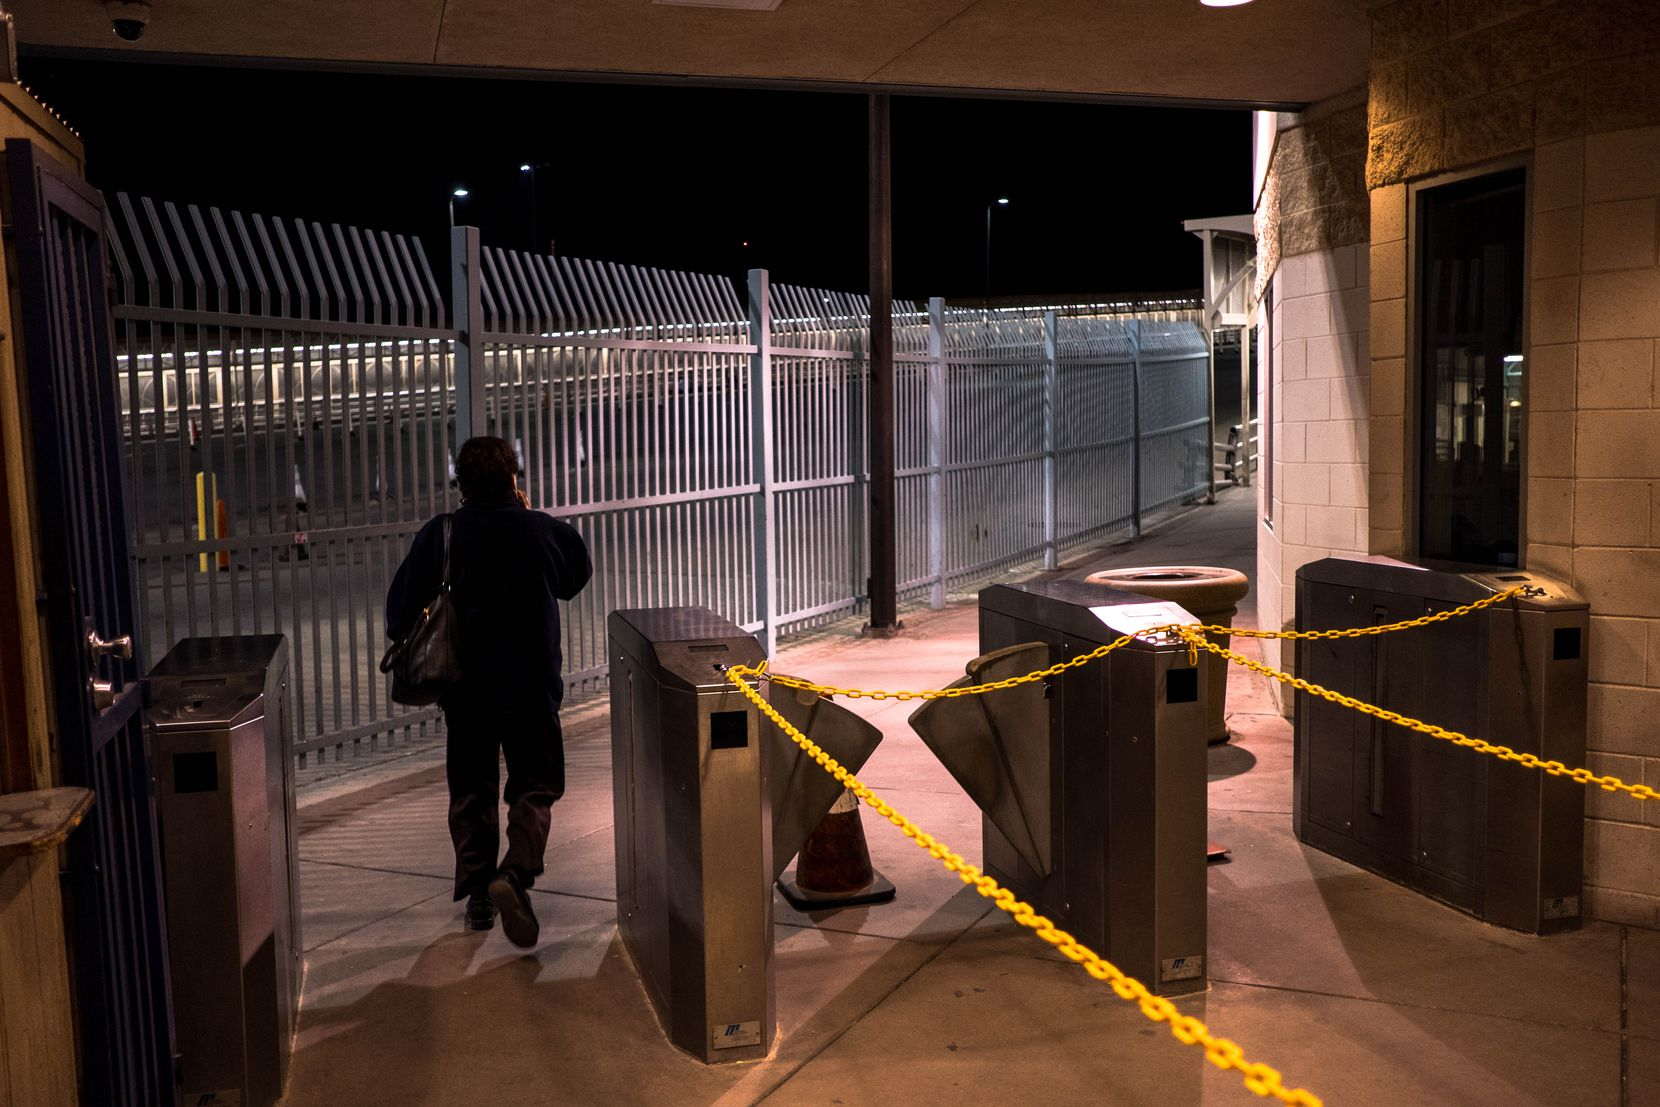 A traveler walked past the entrance to the Paso Del Norte Port of Entry in El Paso on the way to Ciudad Juárez, Mexico, Saturday, March 21, 2020.